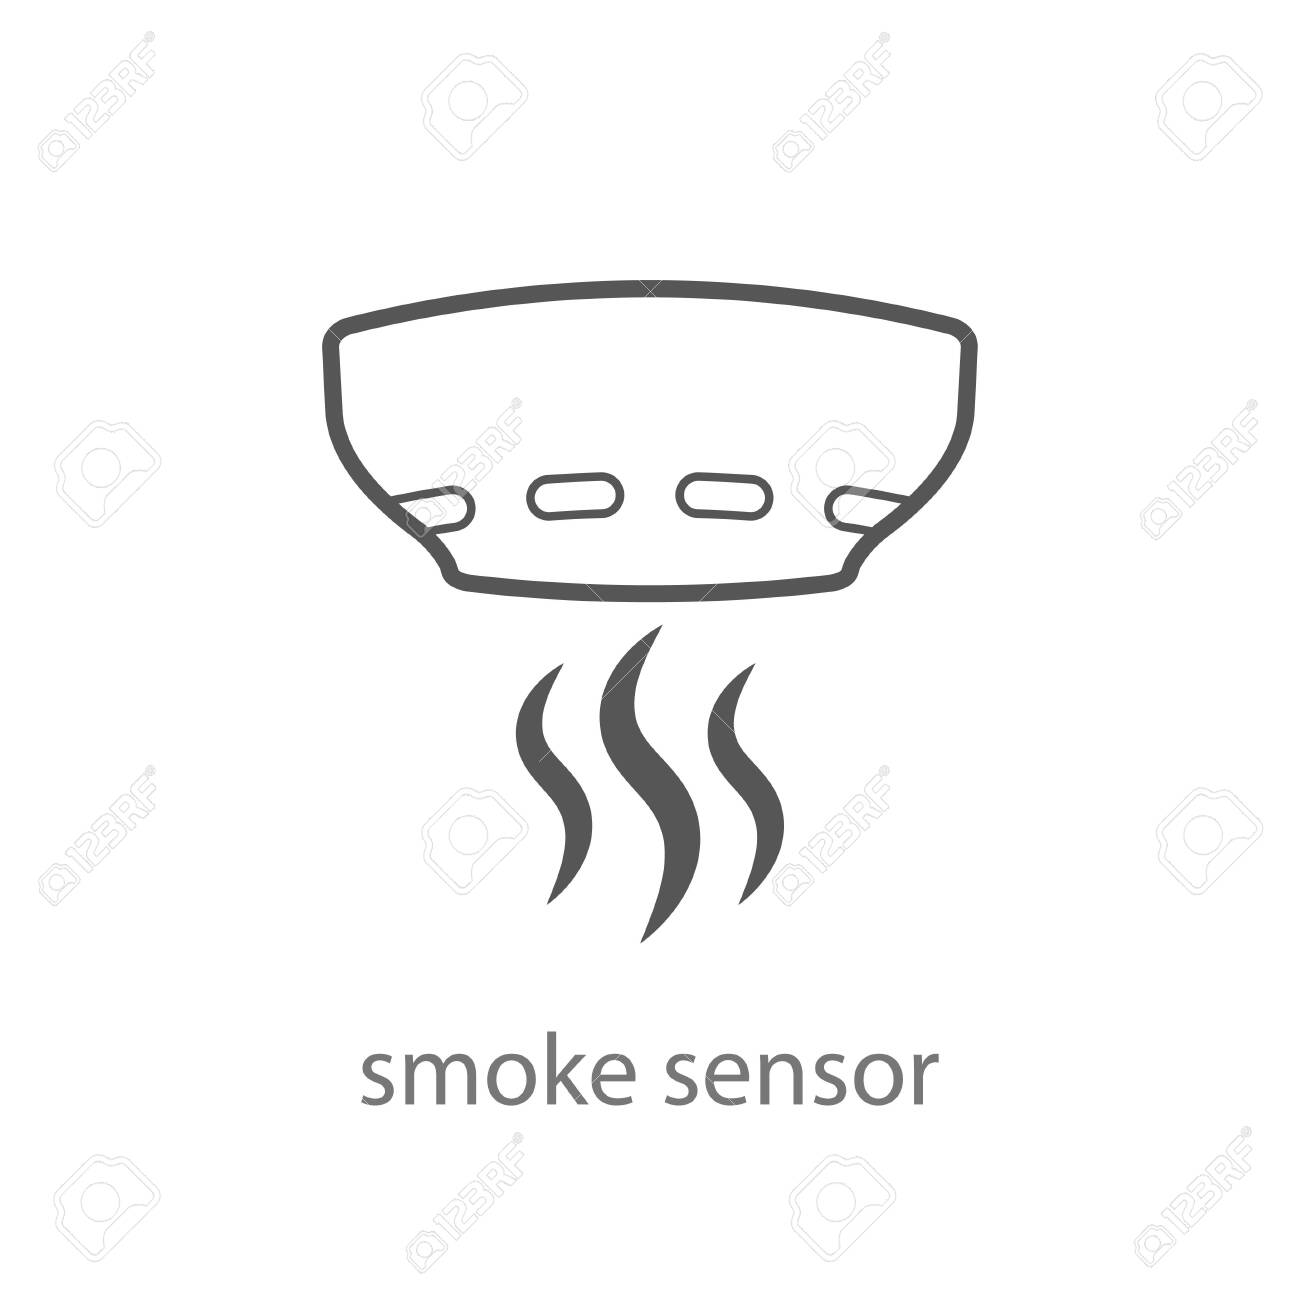 Smoke Alarm System Vector Linear Symbol Isolated On White Background Royalty Free Cliparts Vectors And Stock Illustration Image 141785431